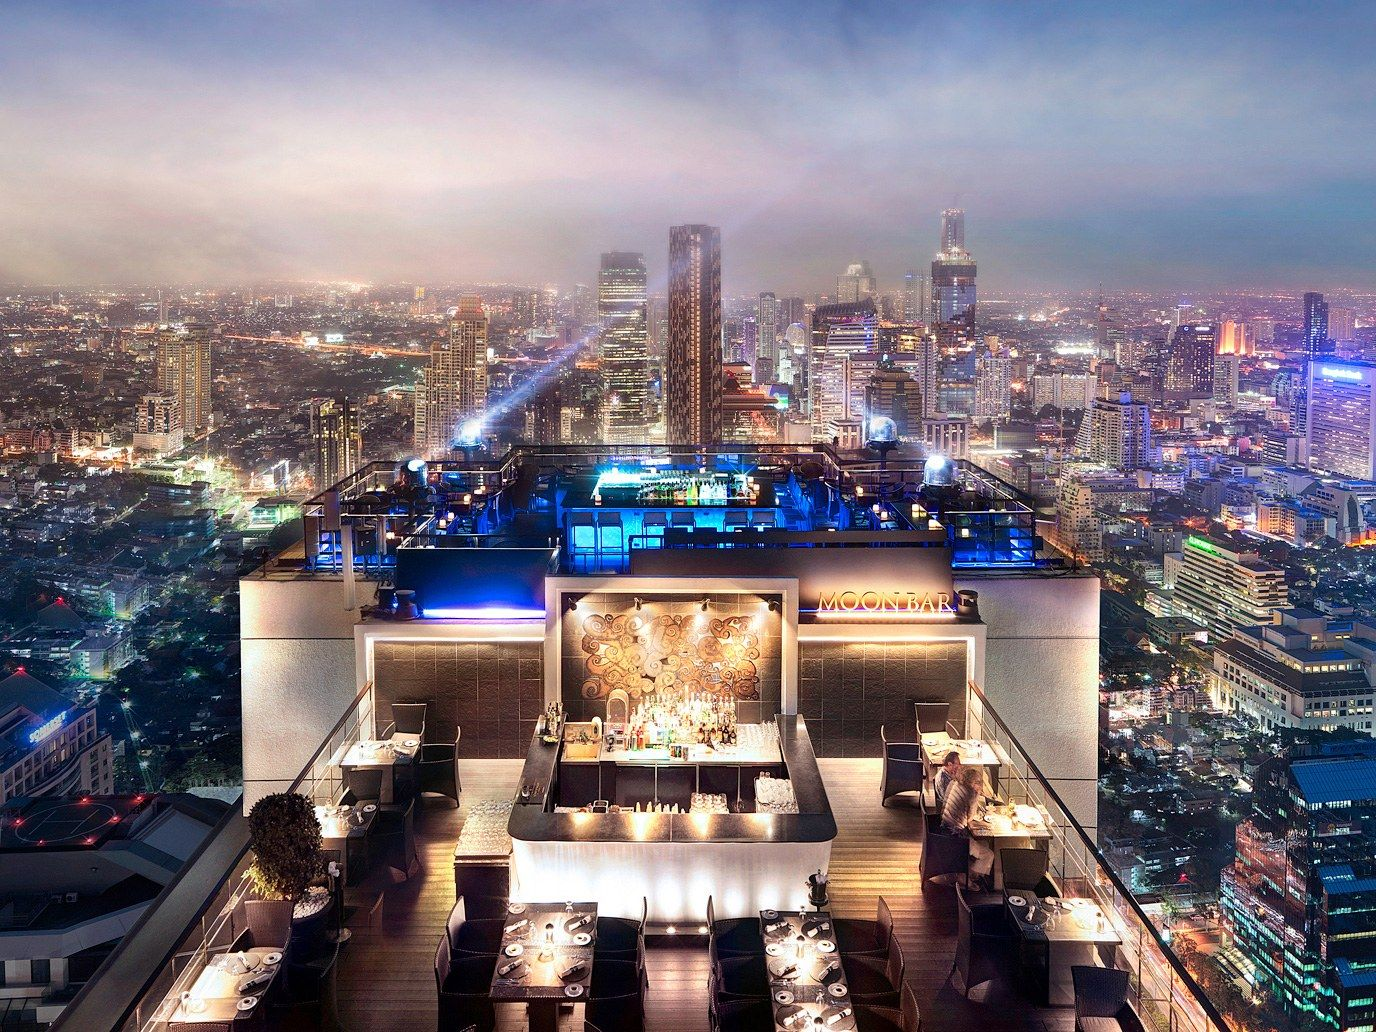 The 15 Best Rooftop Bars In The World Best Rooftop Bars Rooftop Bar Bangkok Rooftop Bar